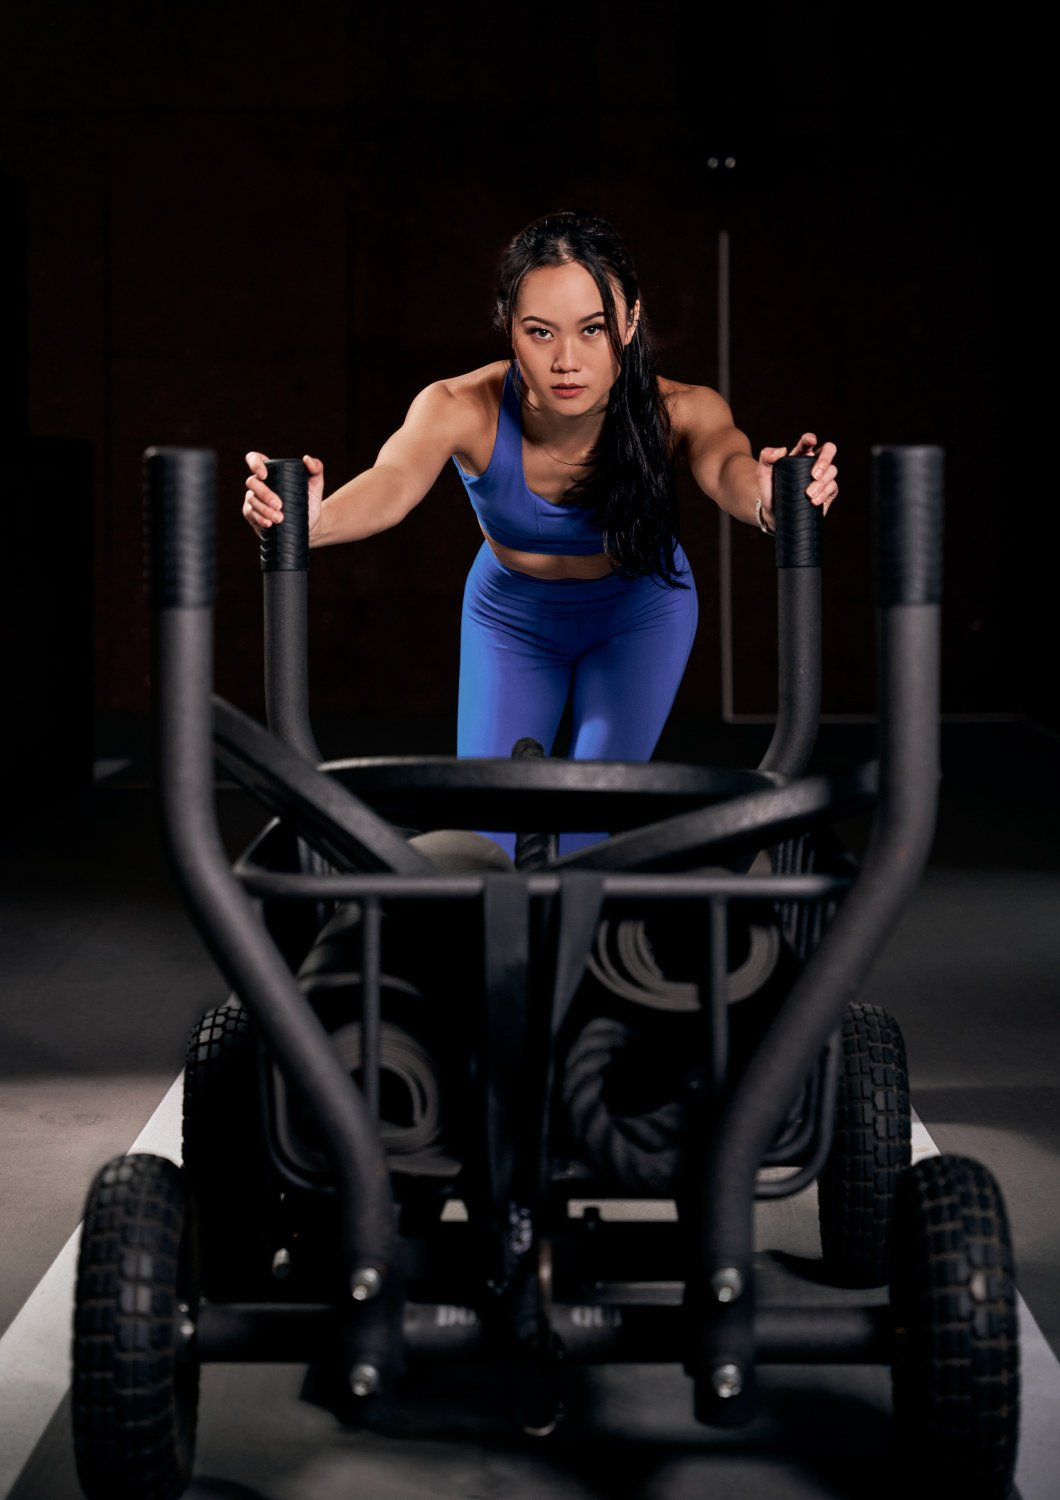 portrait photographers singapore an atheletic woman pushing a workout equipment